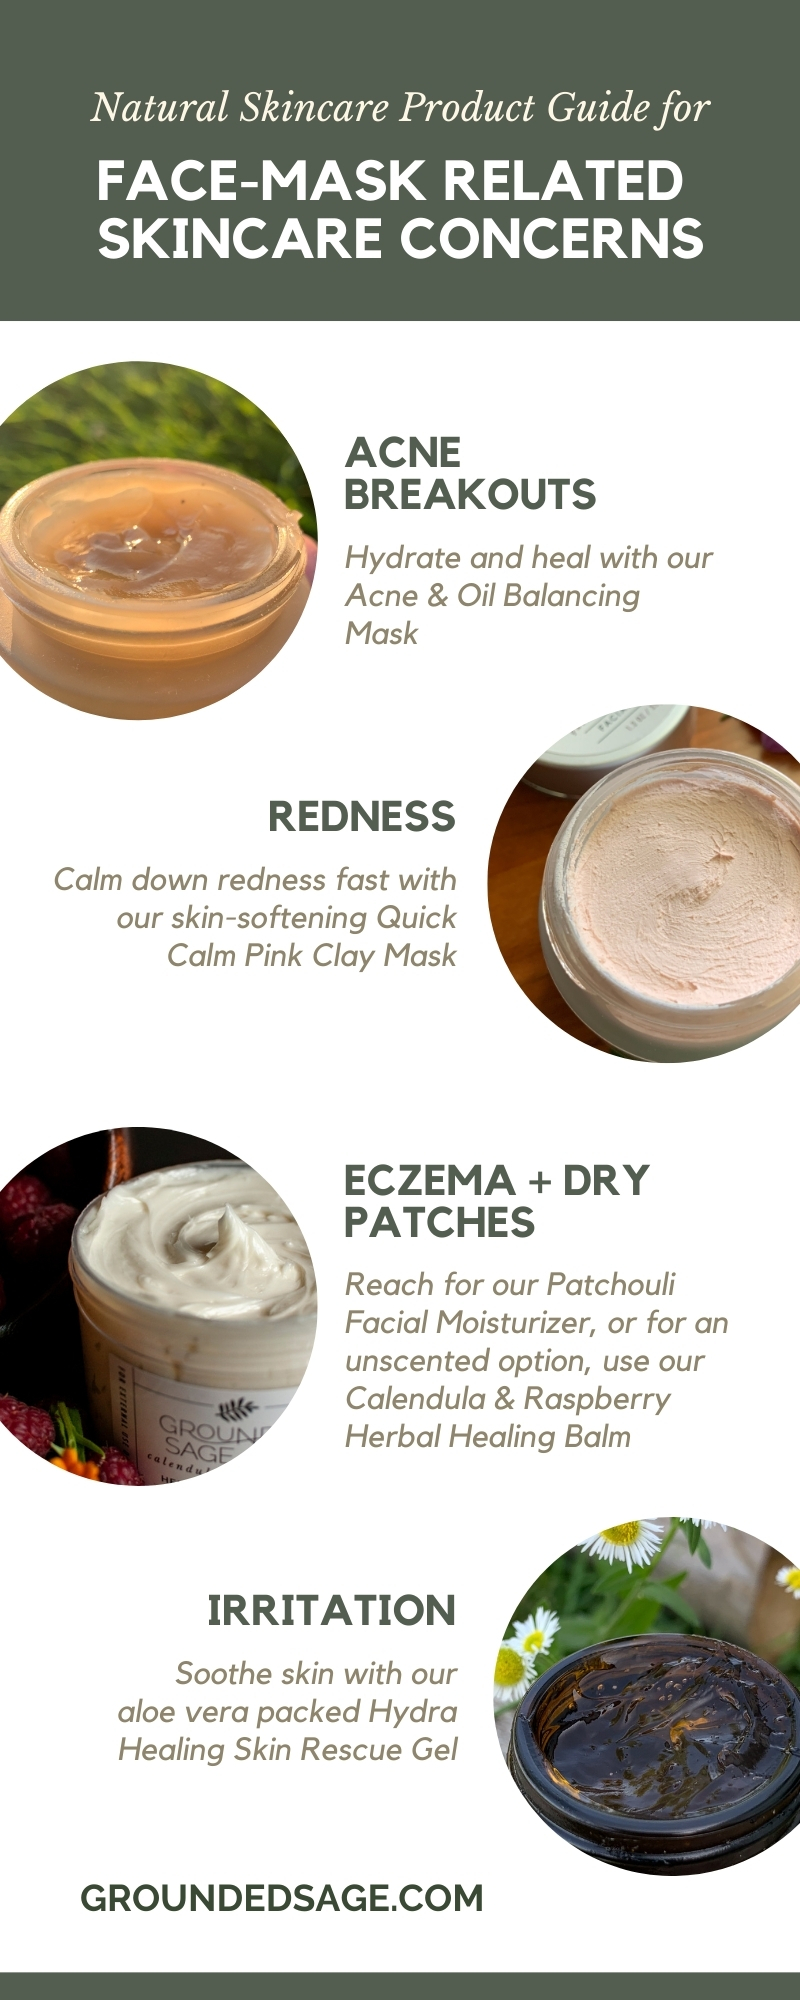 Natural skincare product guide to fix face mask related skin concerns including acne breakouts (maskne), redness, eczema, dry patches, and irritation. Healthy beauty solutions for sensitive skin and mask wearers.